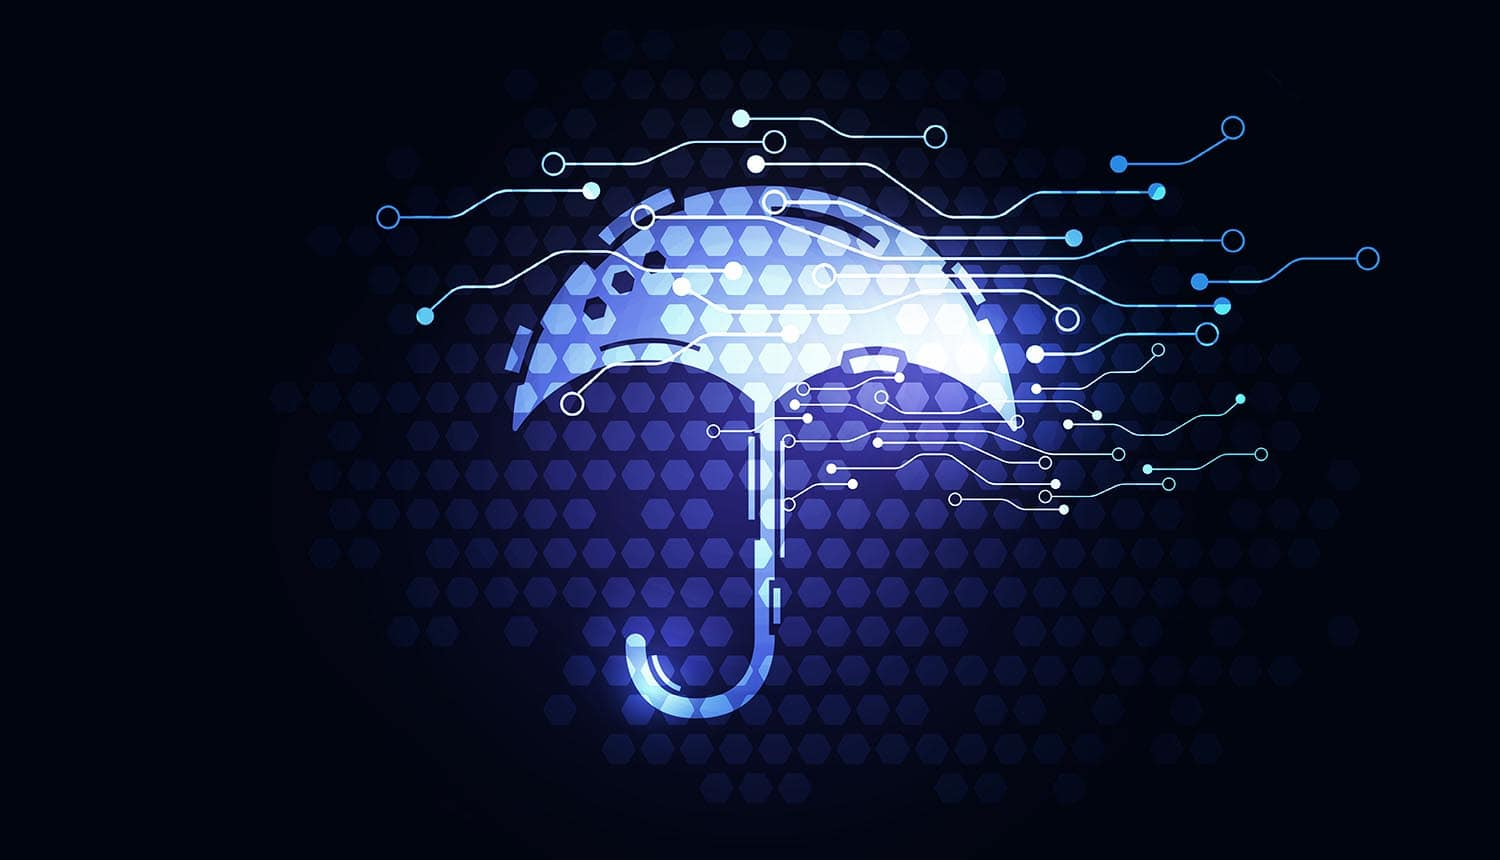 Digital form of an umbrella showing an increase in companies turning to cyber insurance